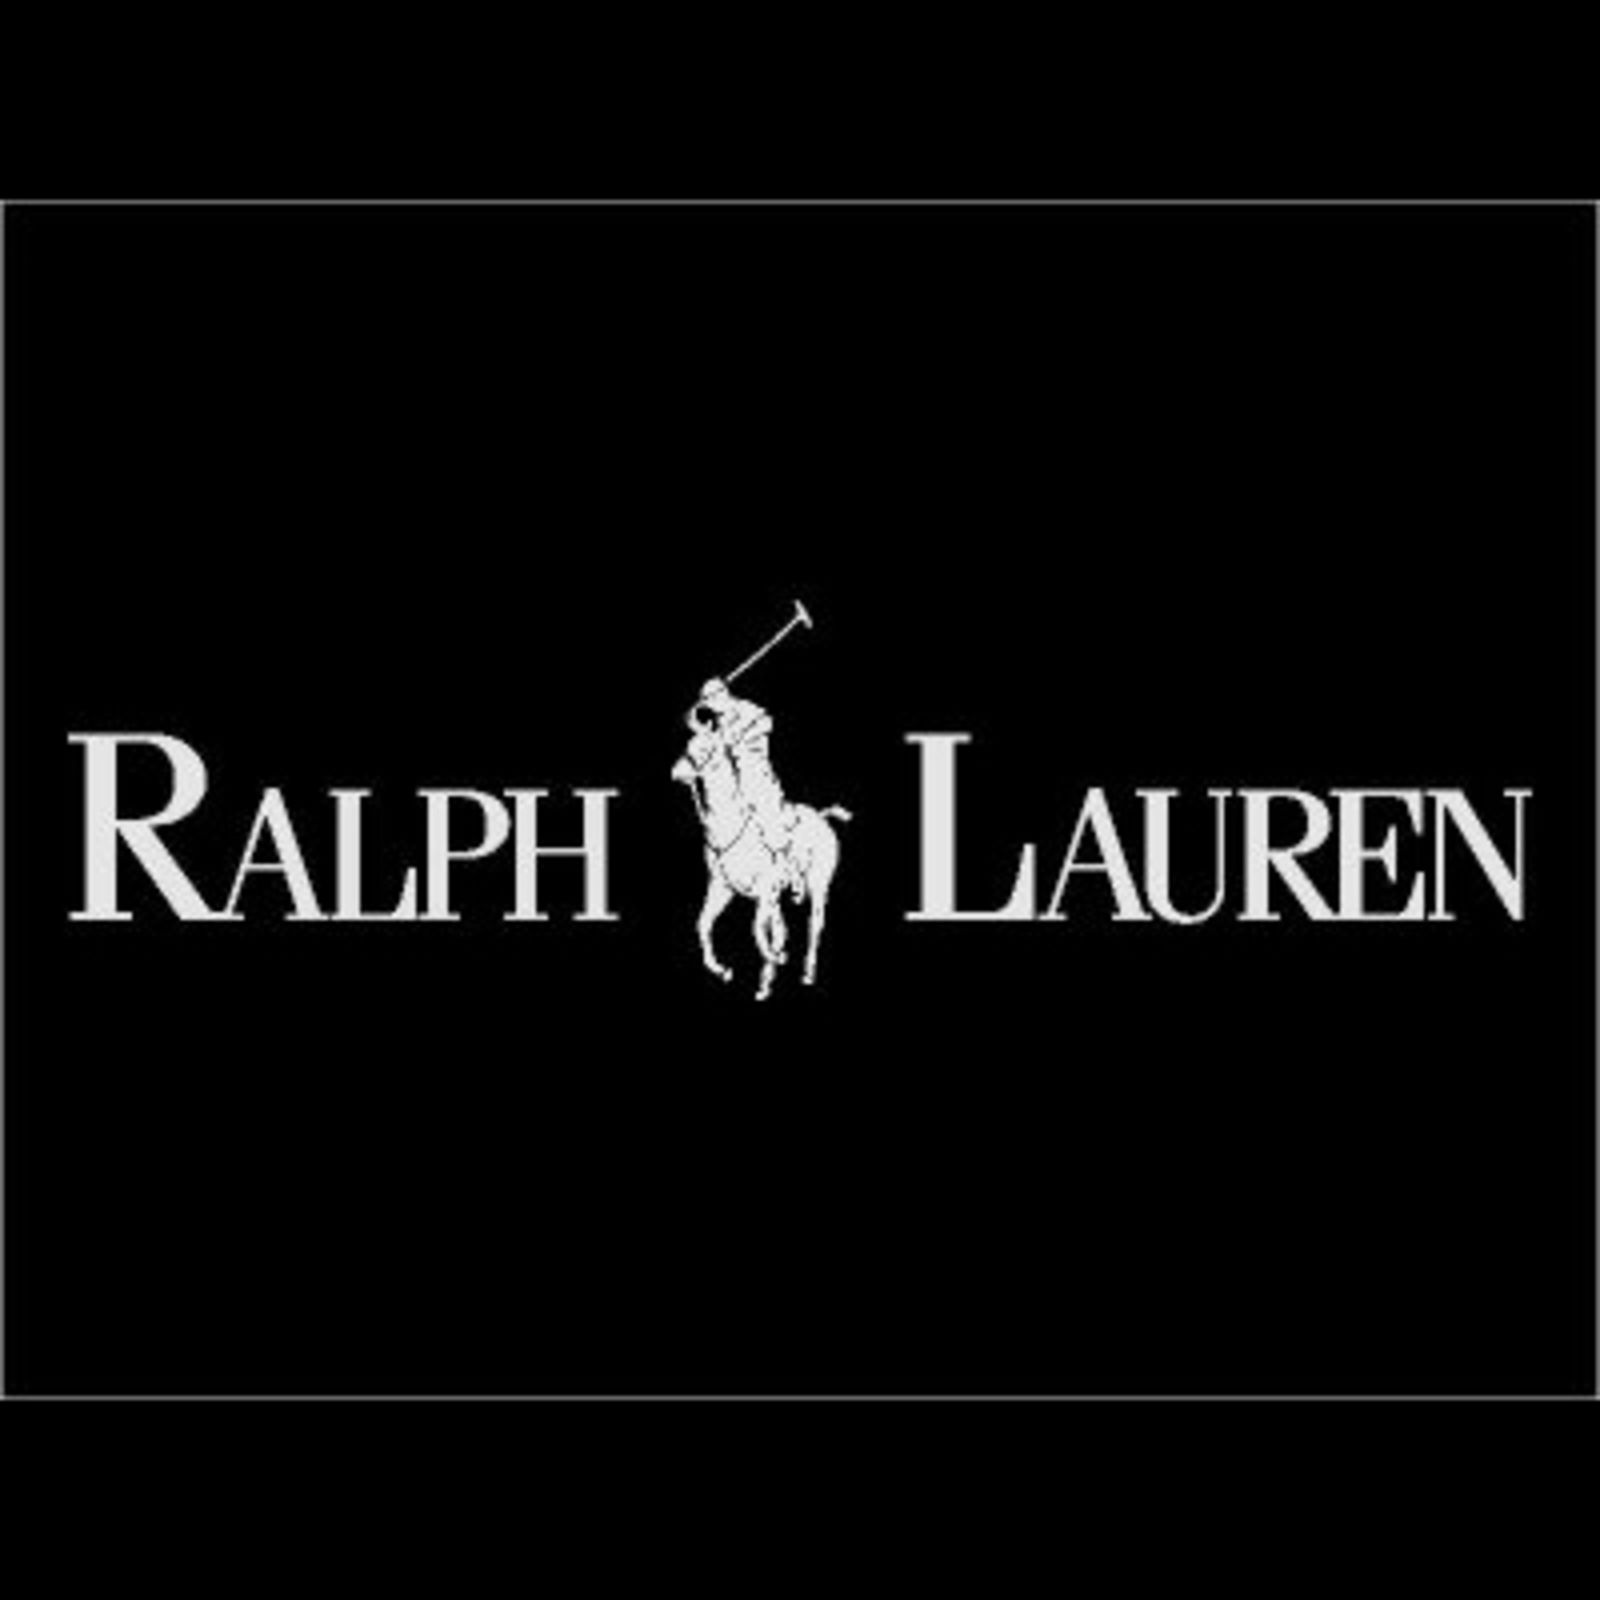 RALPH LAUREN BLACK LABEL (Изображение 1)